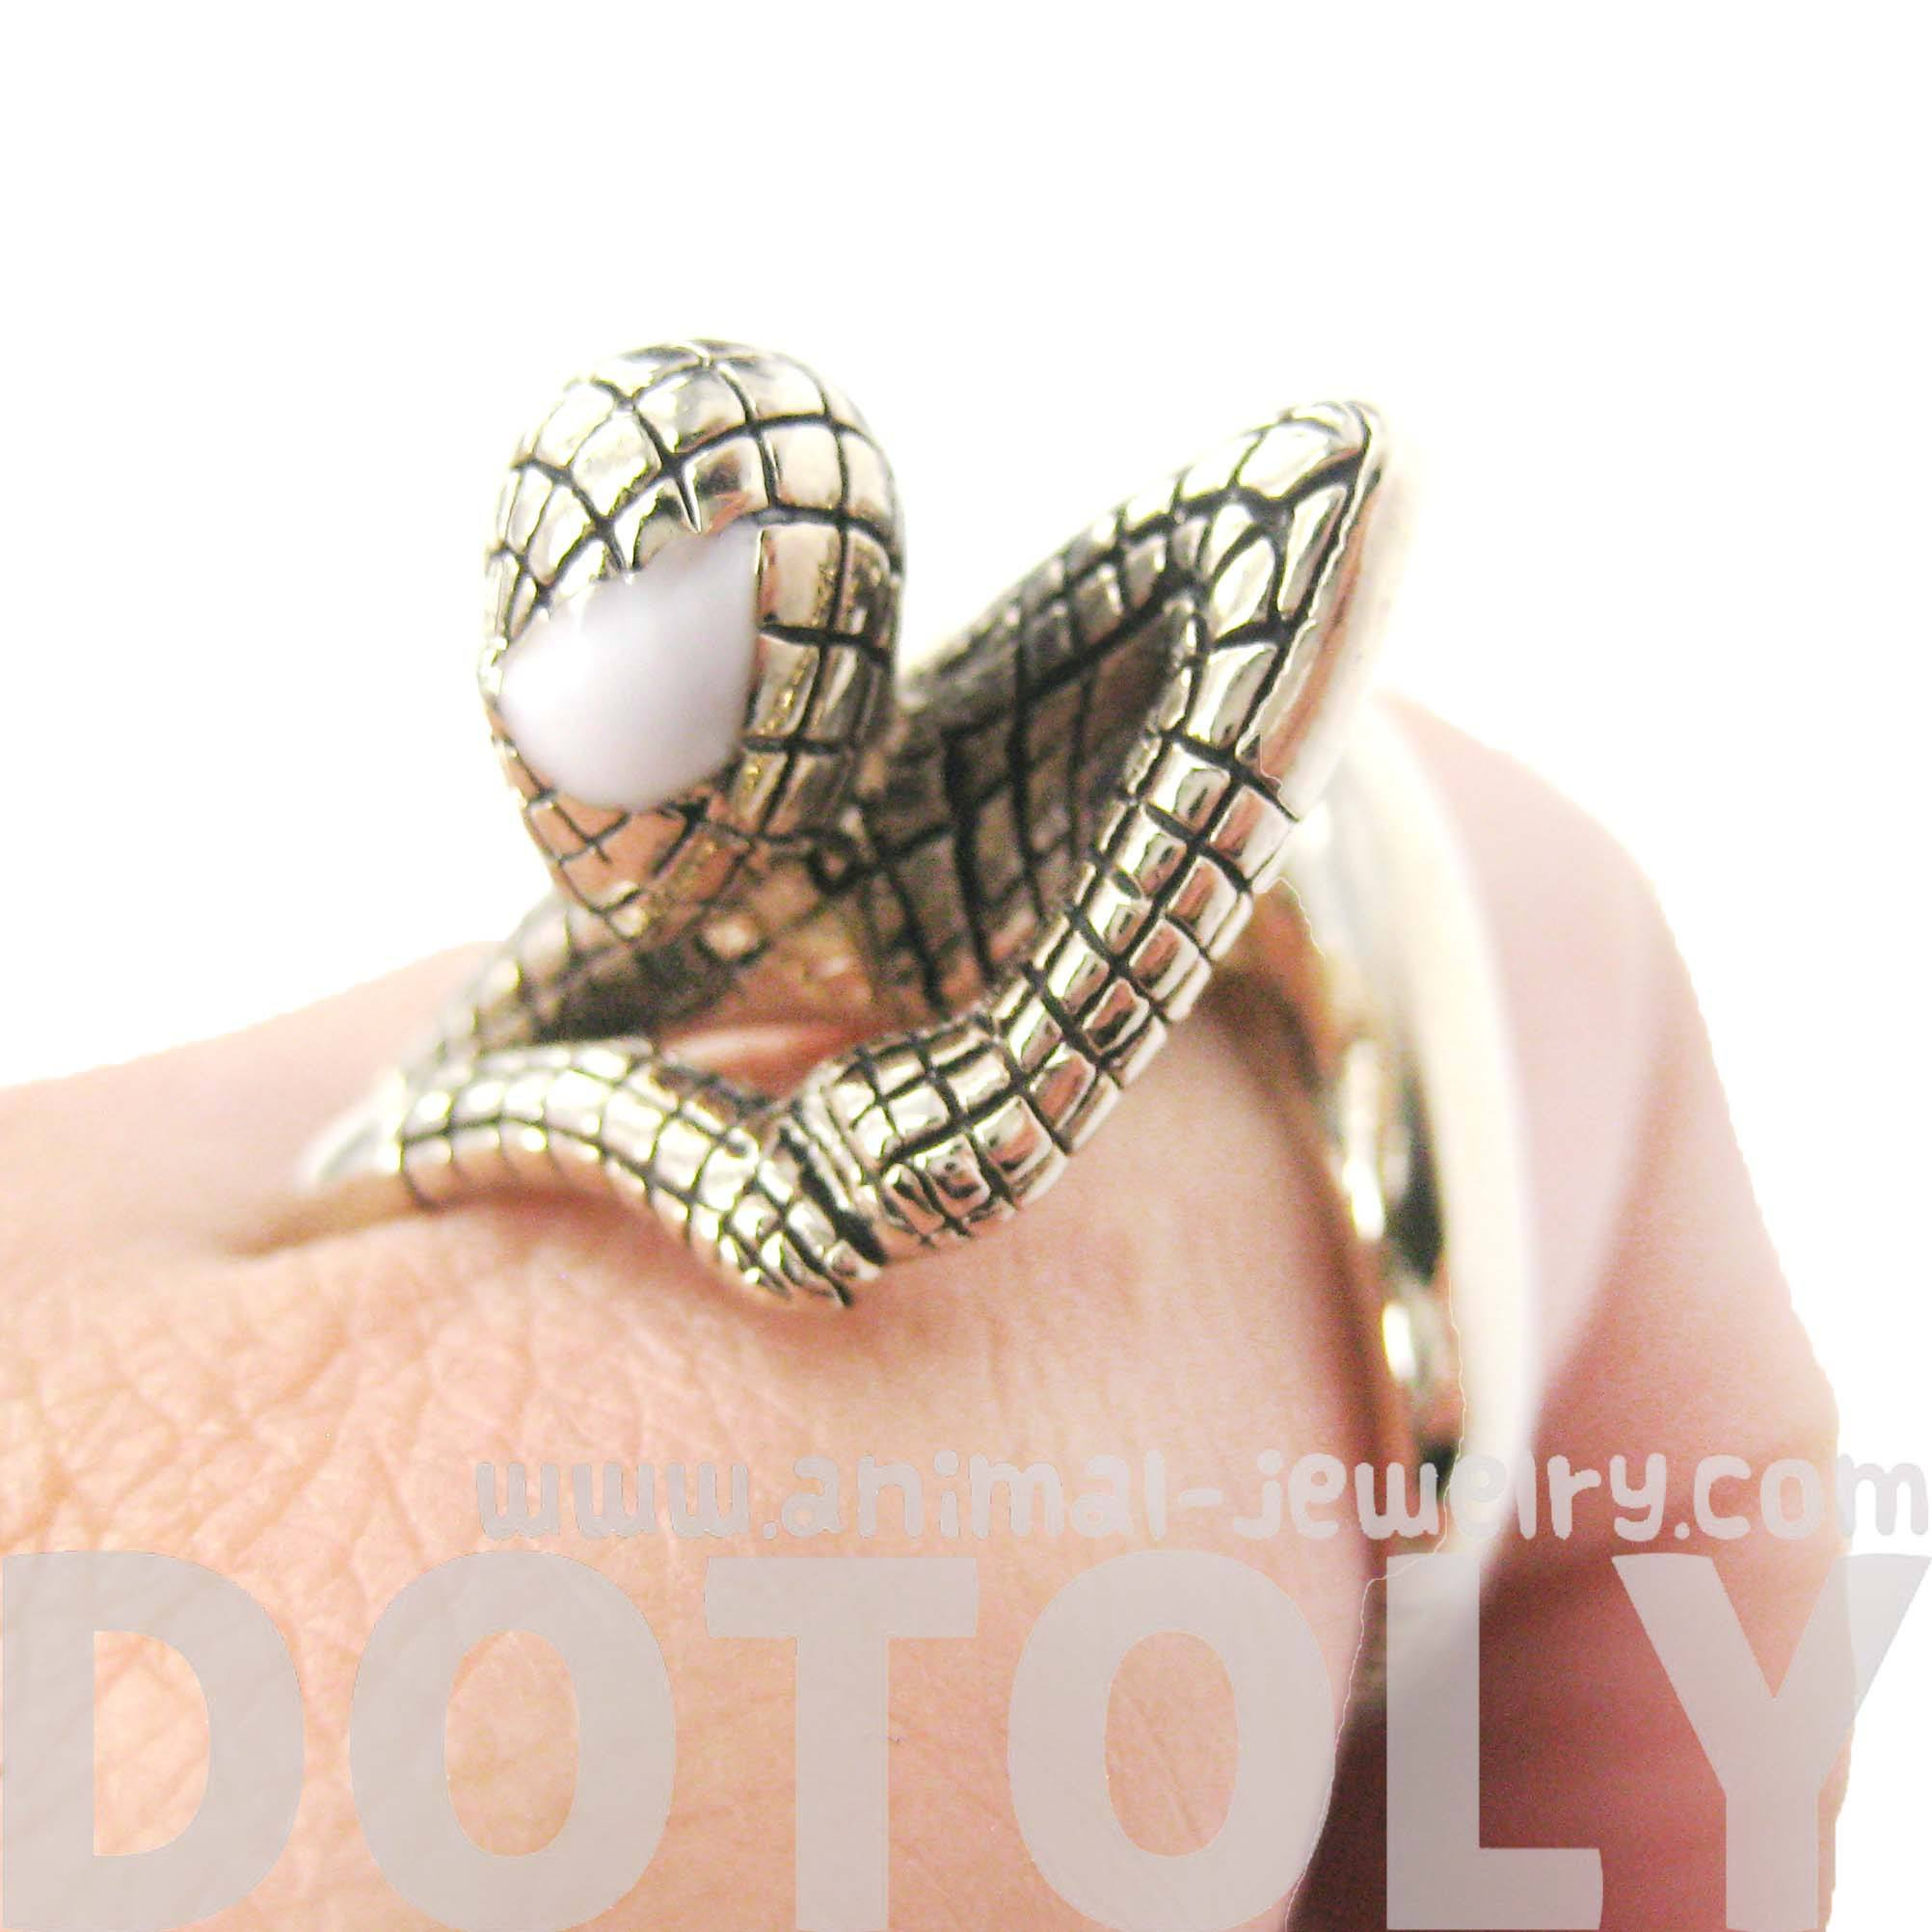 realistic-spiderman-wrapped-around-your-finger-ring-in-shiny-gold-us-size-8-and-9